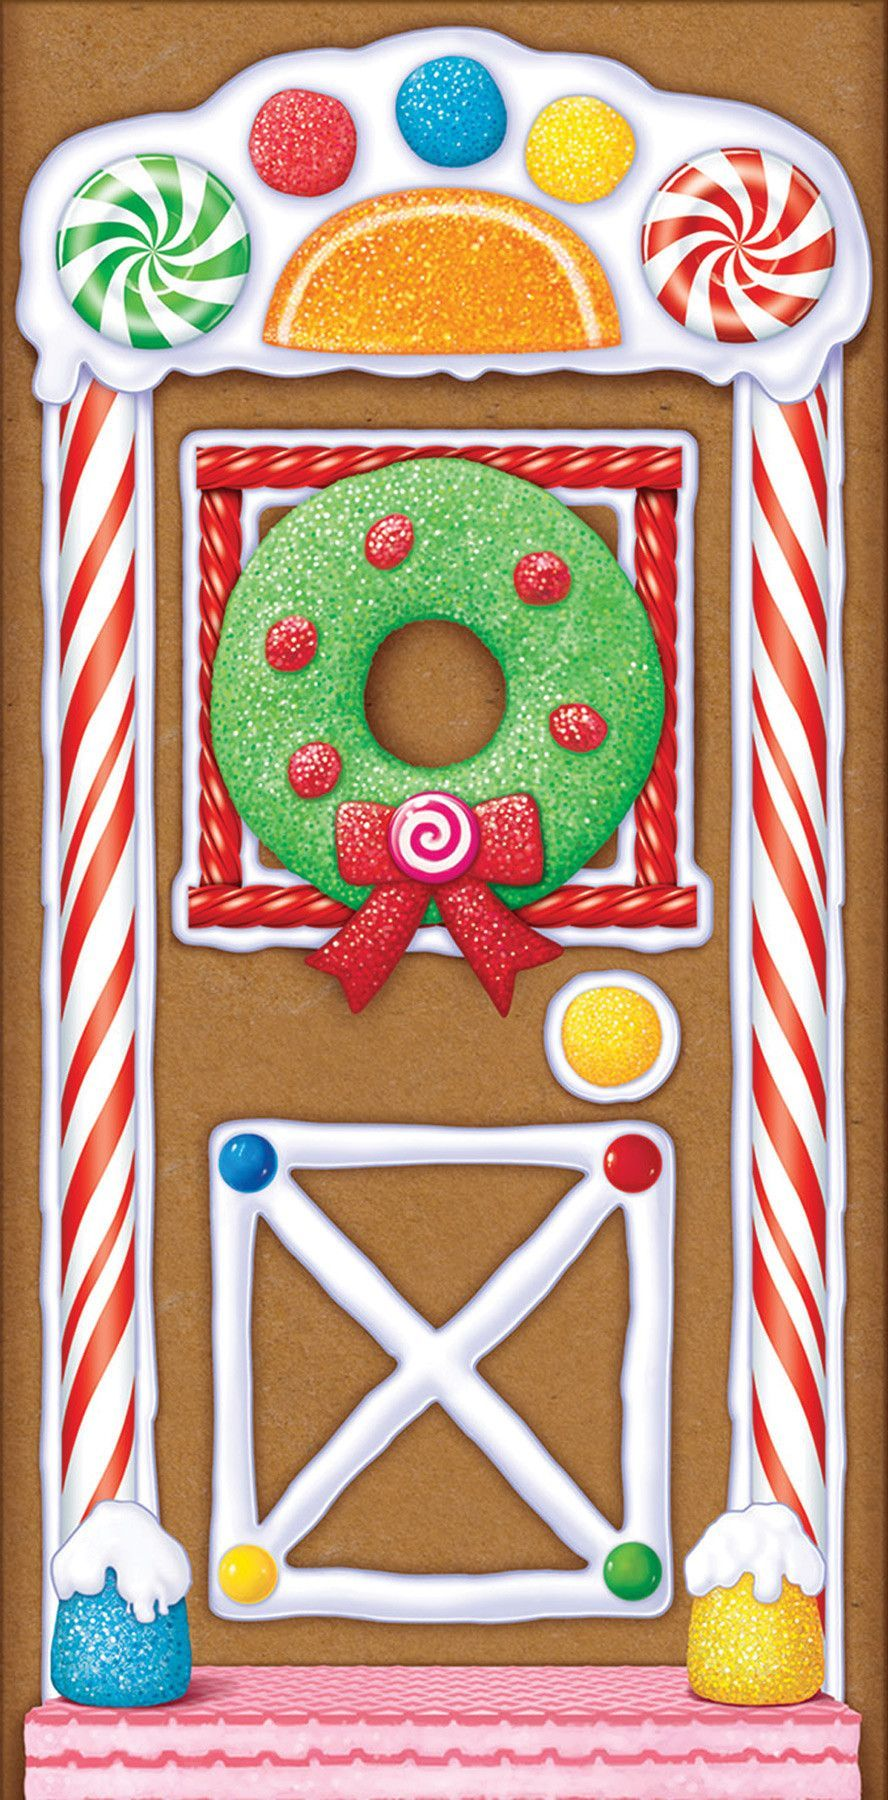 Colorful candy and frosting gingerbread image will be a